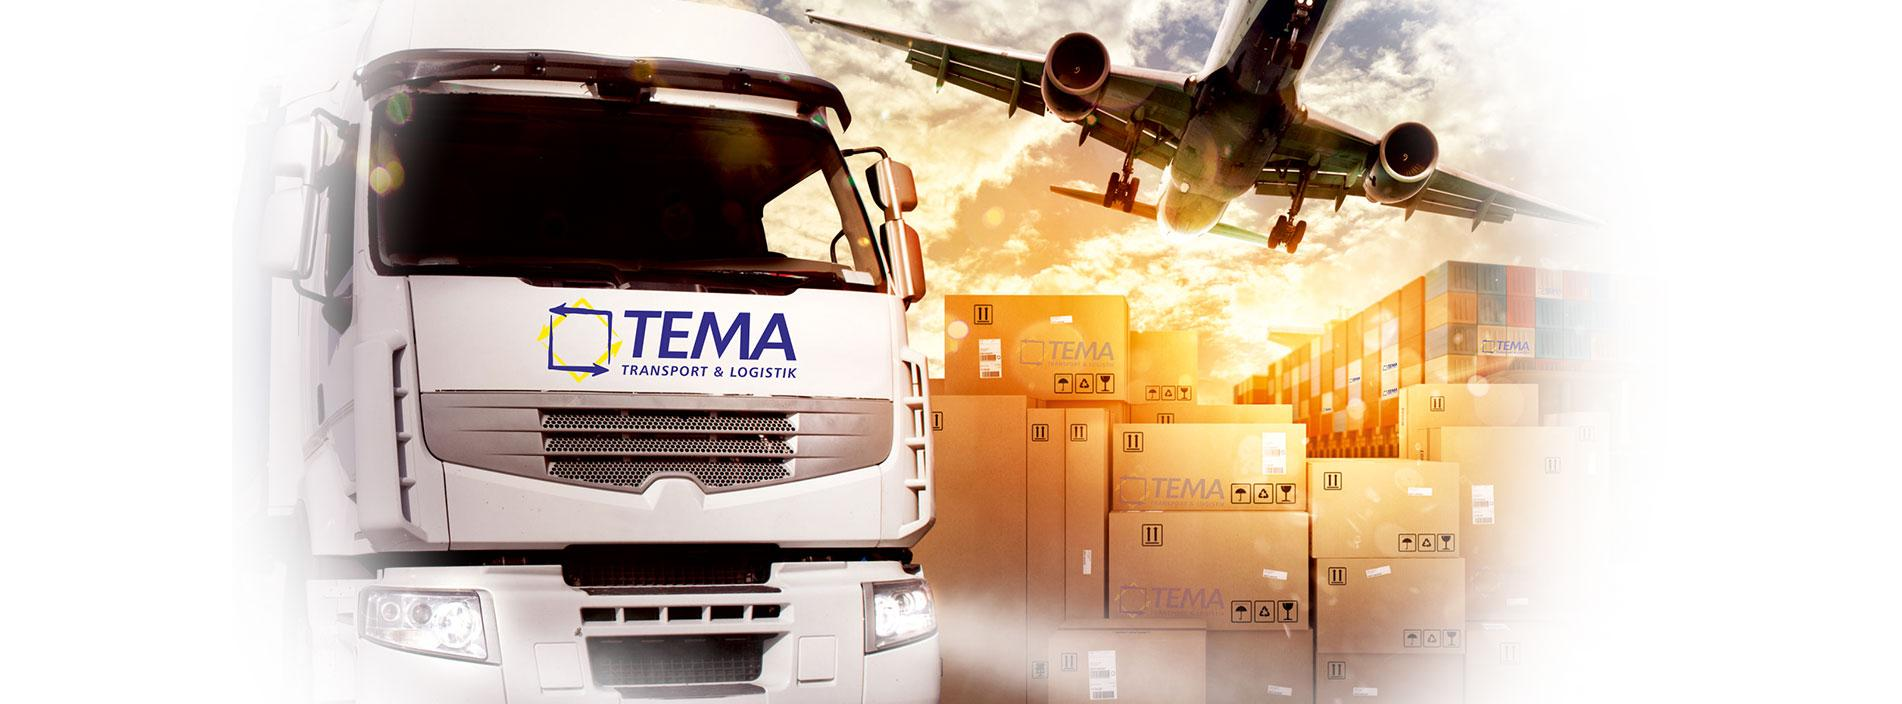 Tema Transport und Logistik